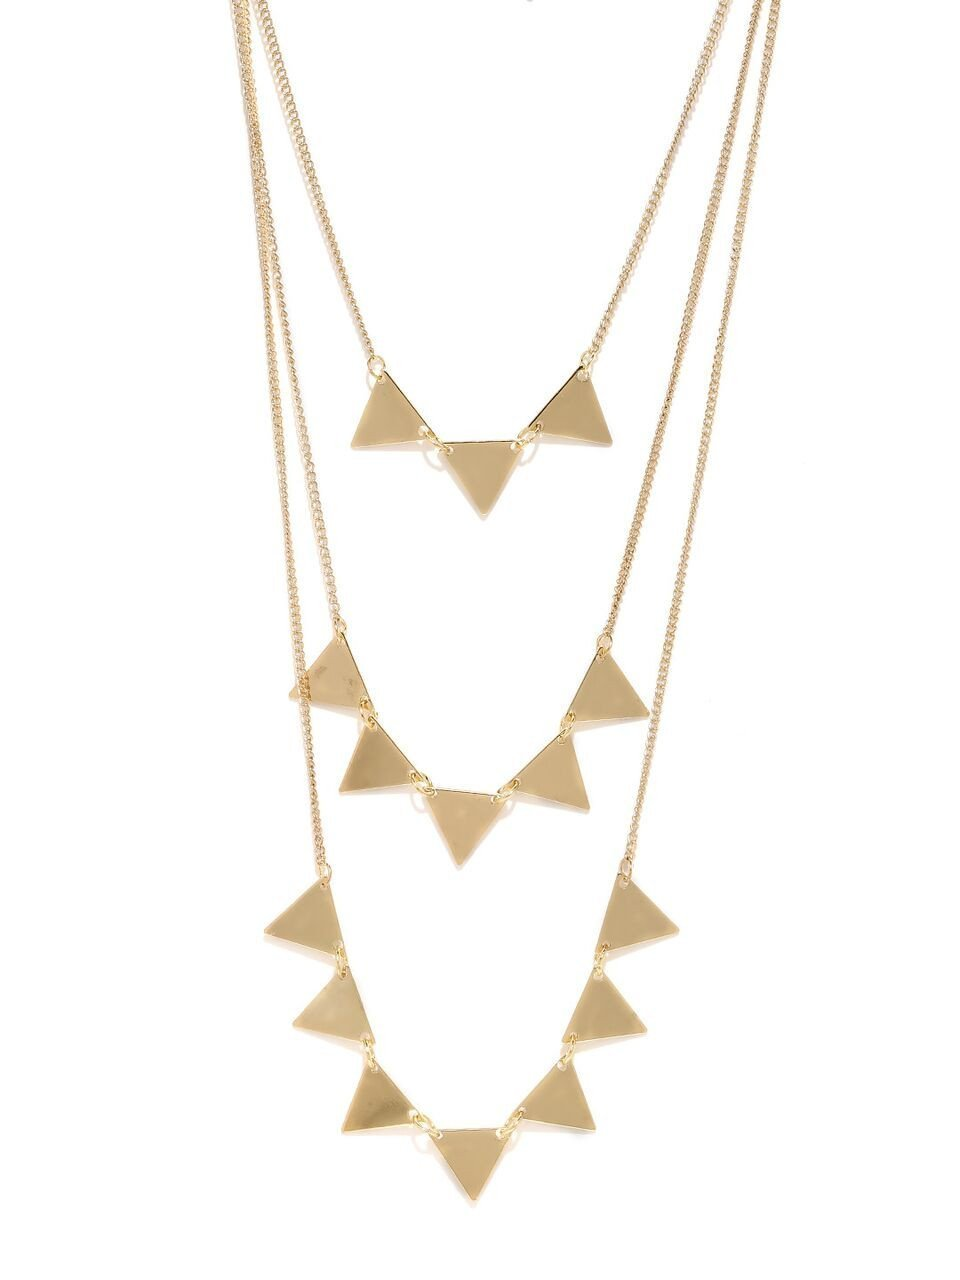 Gold Spiked Coburt Necklace